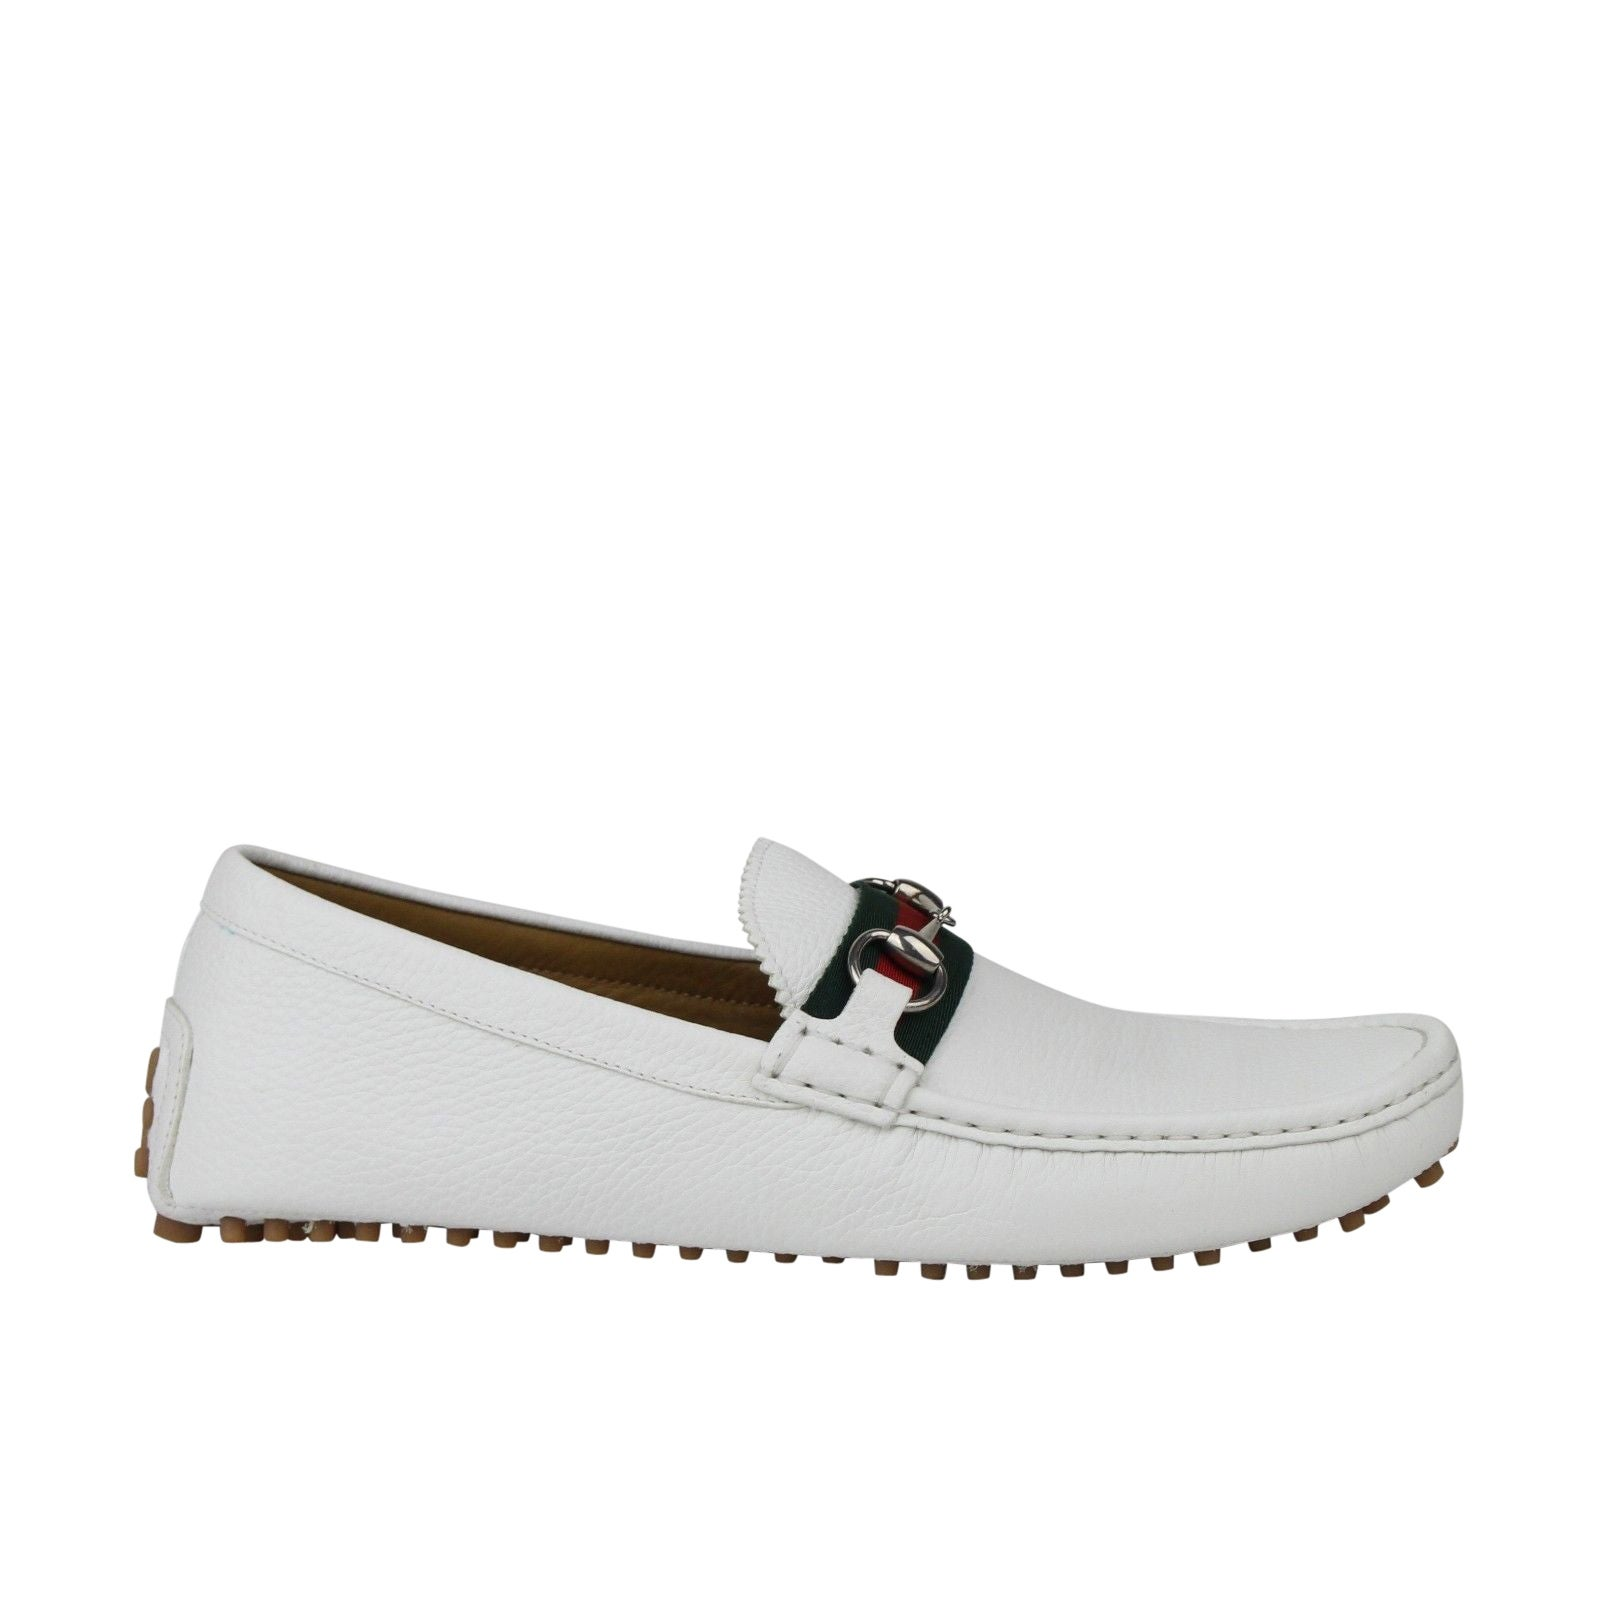 01485be4109 Shop Gucci Men s Horsebit Loafer White Leather Driver Shoe GRG Web 322741 -  12 G   12.5 US - Free Shipping Today - Overstock - 28031643